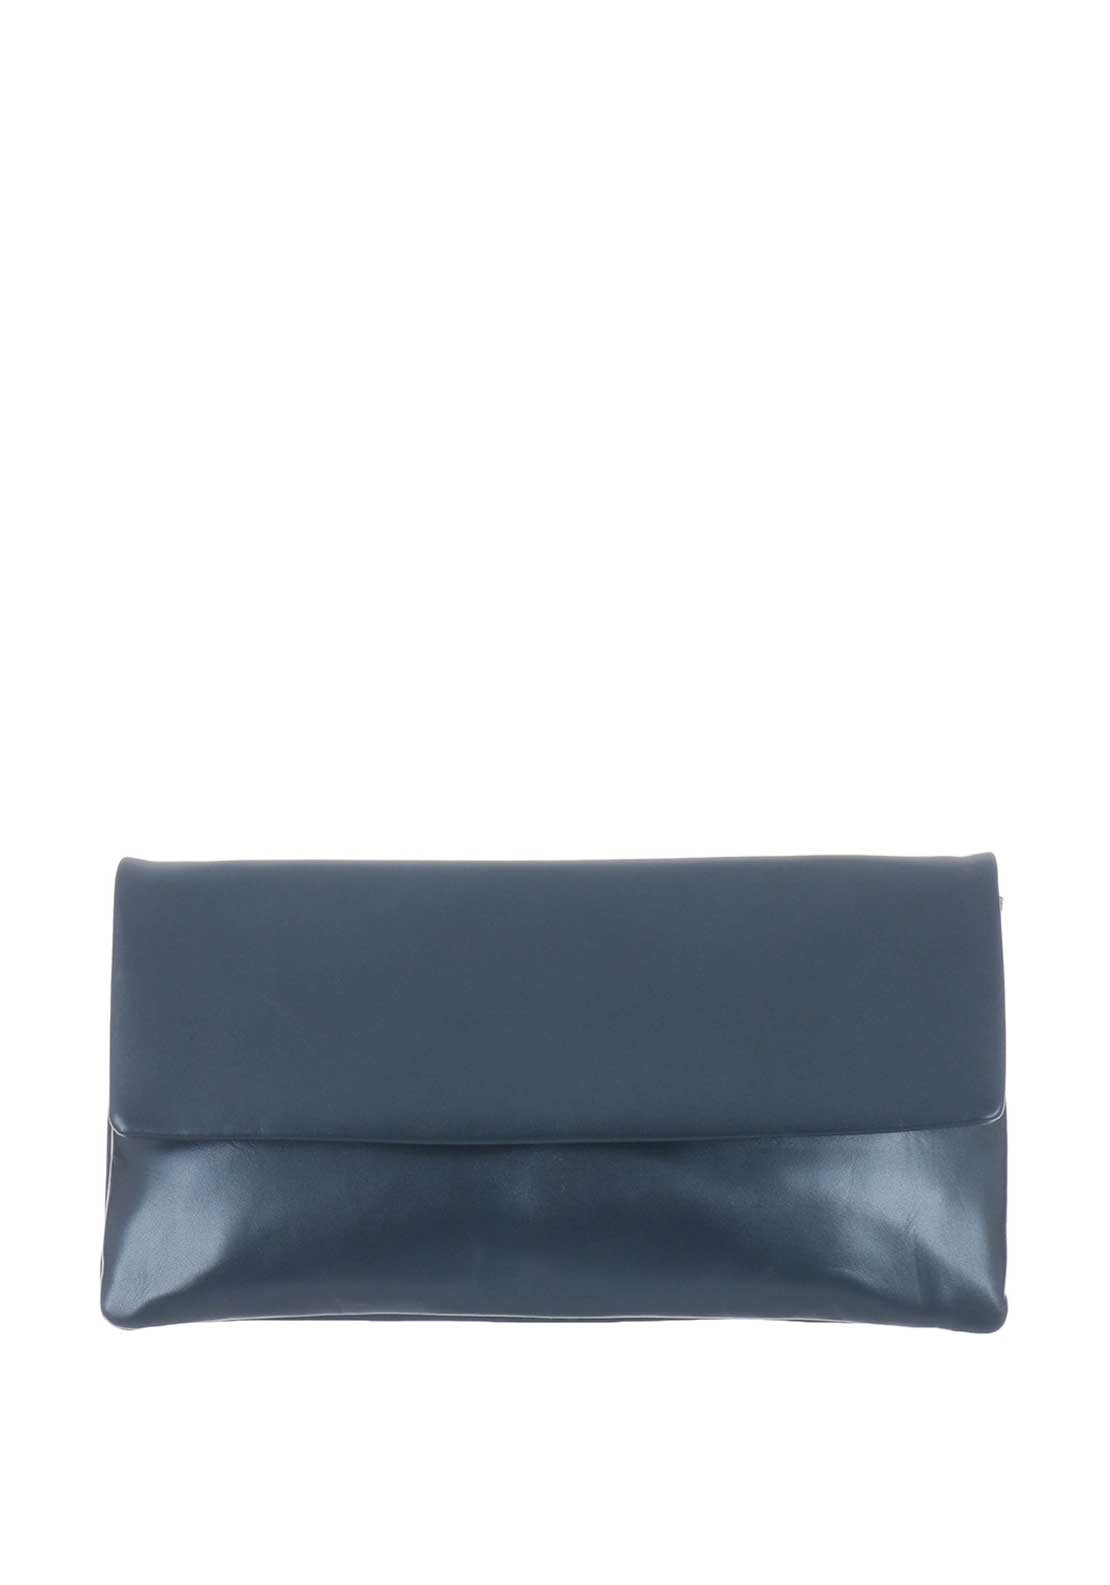 Le Babe Leather Clutch Bag, Navy